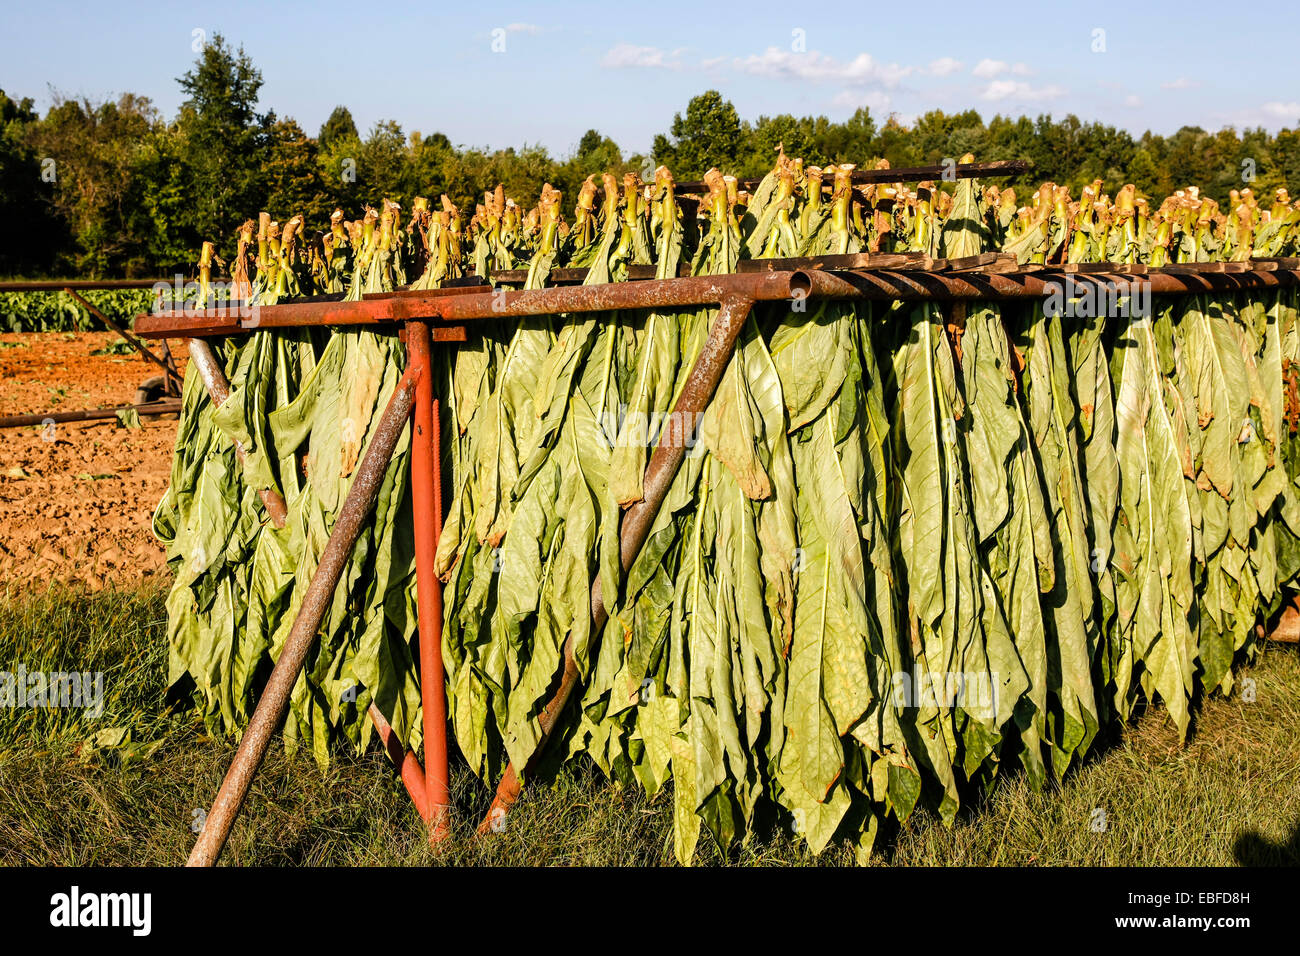 Aromatic Fire-cured Tobacco plant genus Nicotiana of the Solanaceae (nightshade) family being grown and cultivated Stock Photo